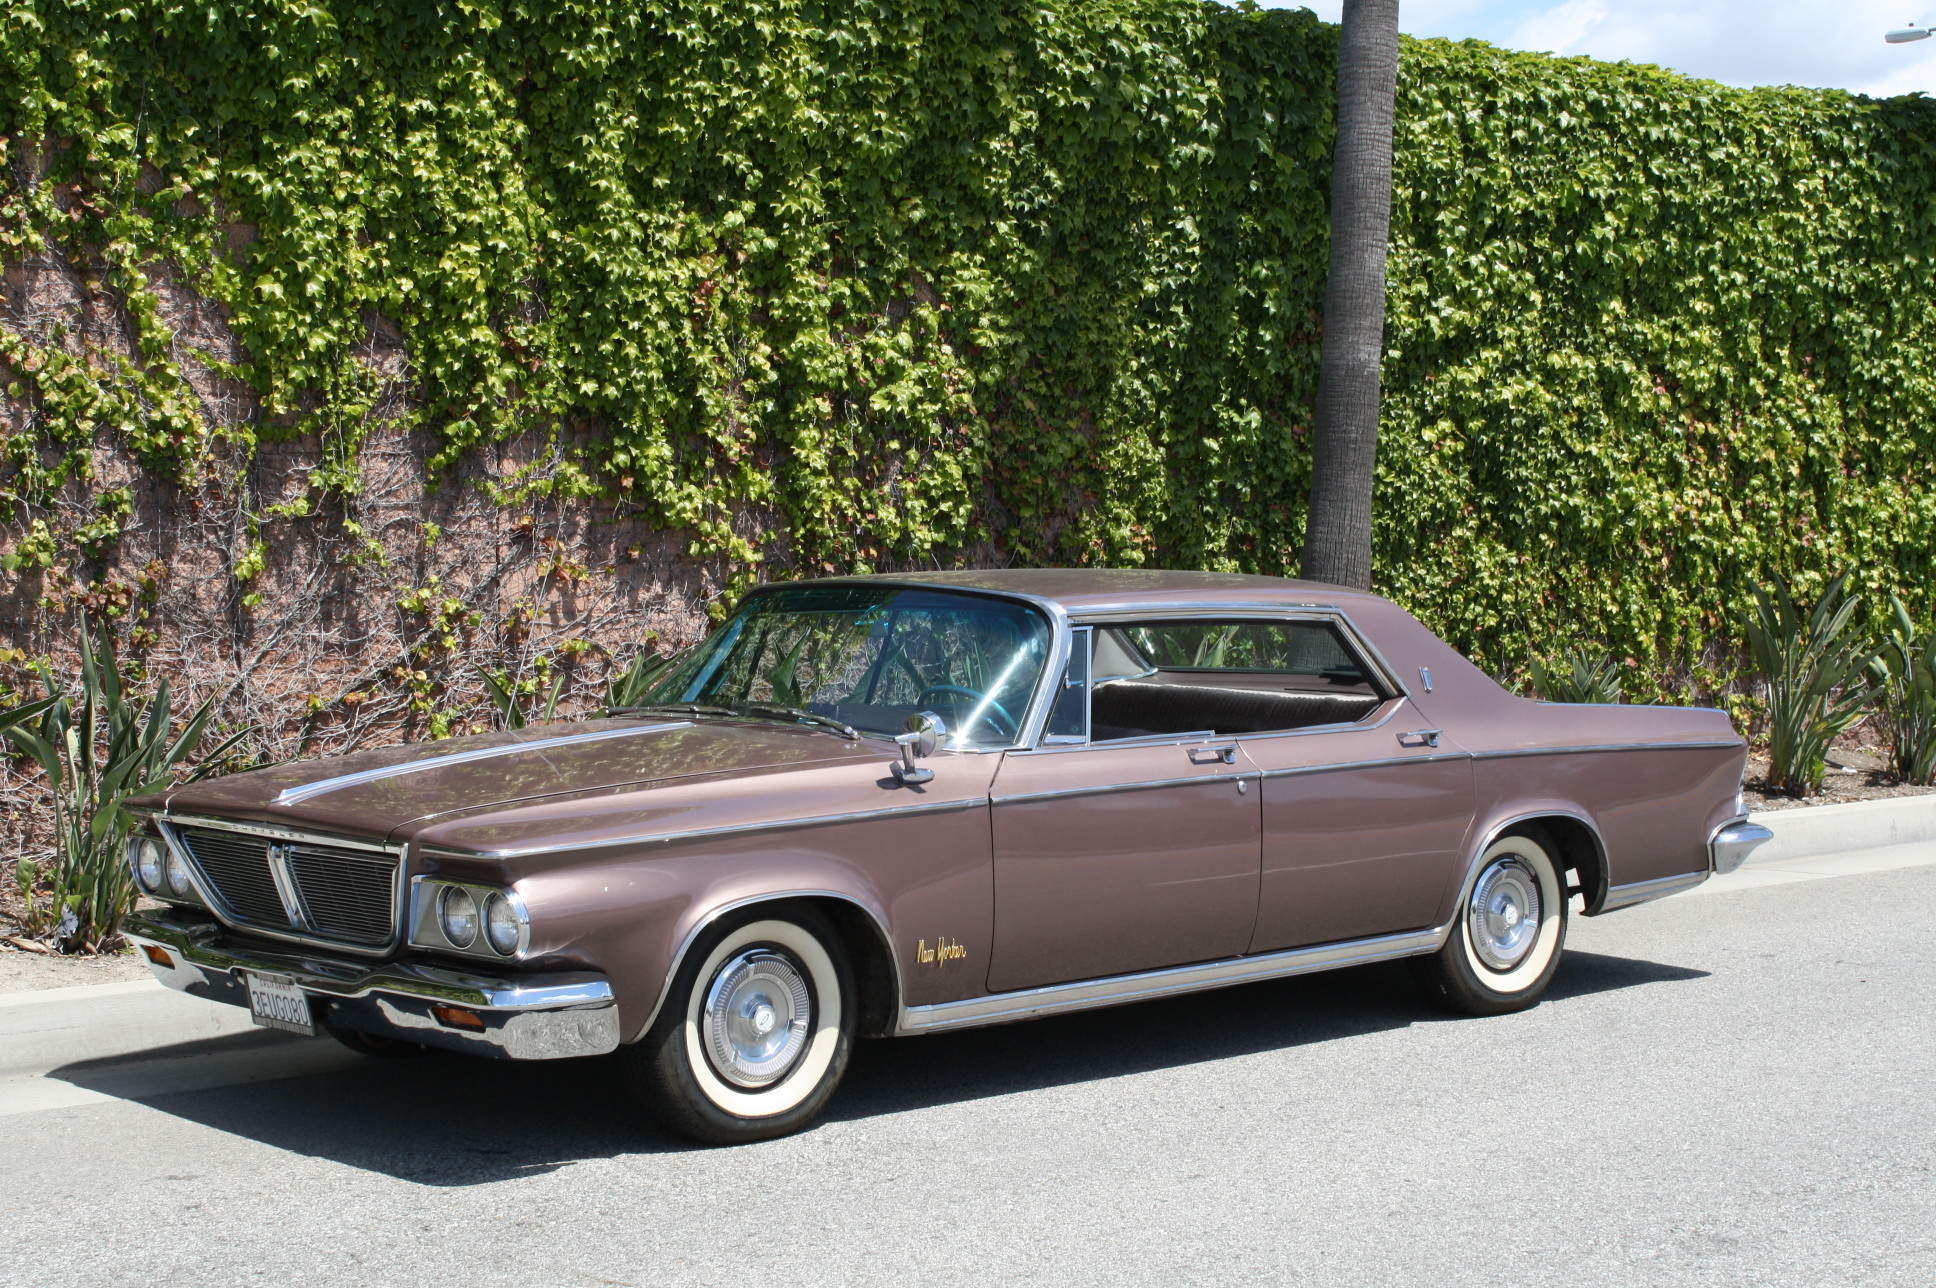 1964 Chrysler New Yorker 4 Door Hardtop